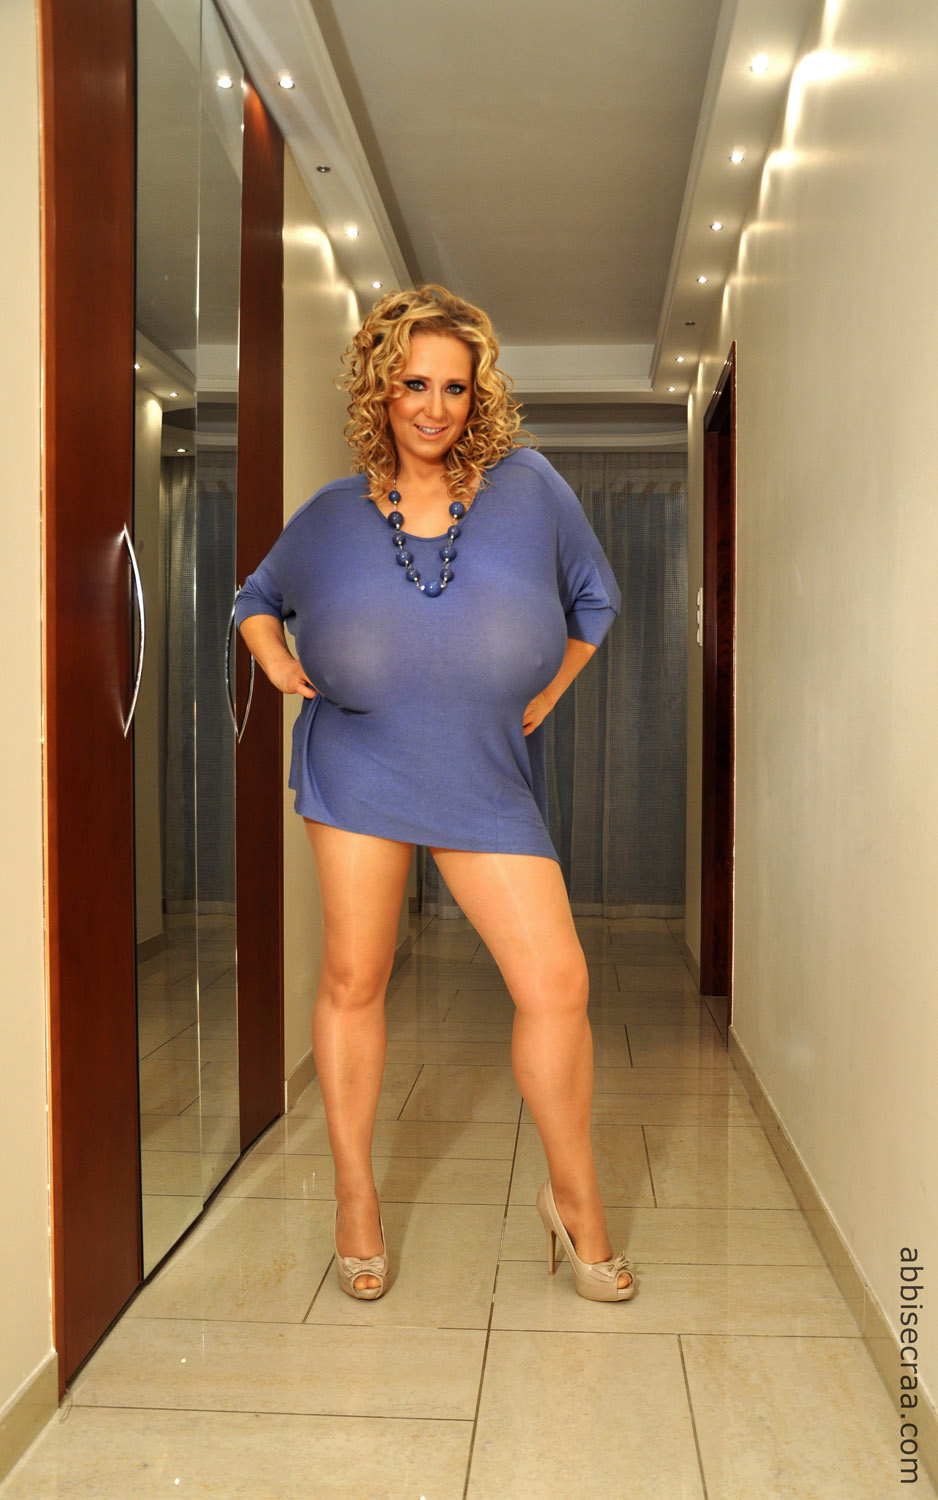 Biggest breasts ever on a 9 month pregnant milf - 3 4